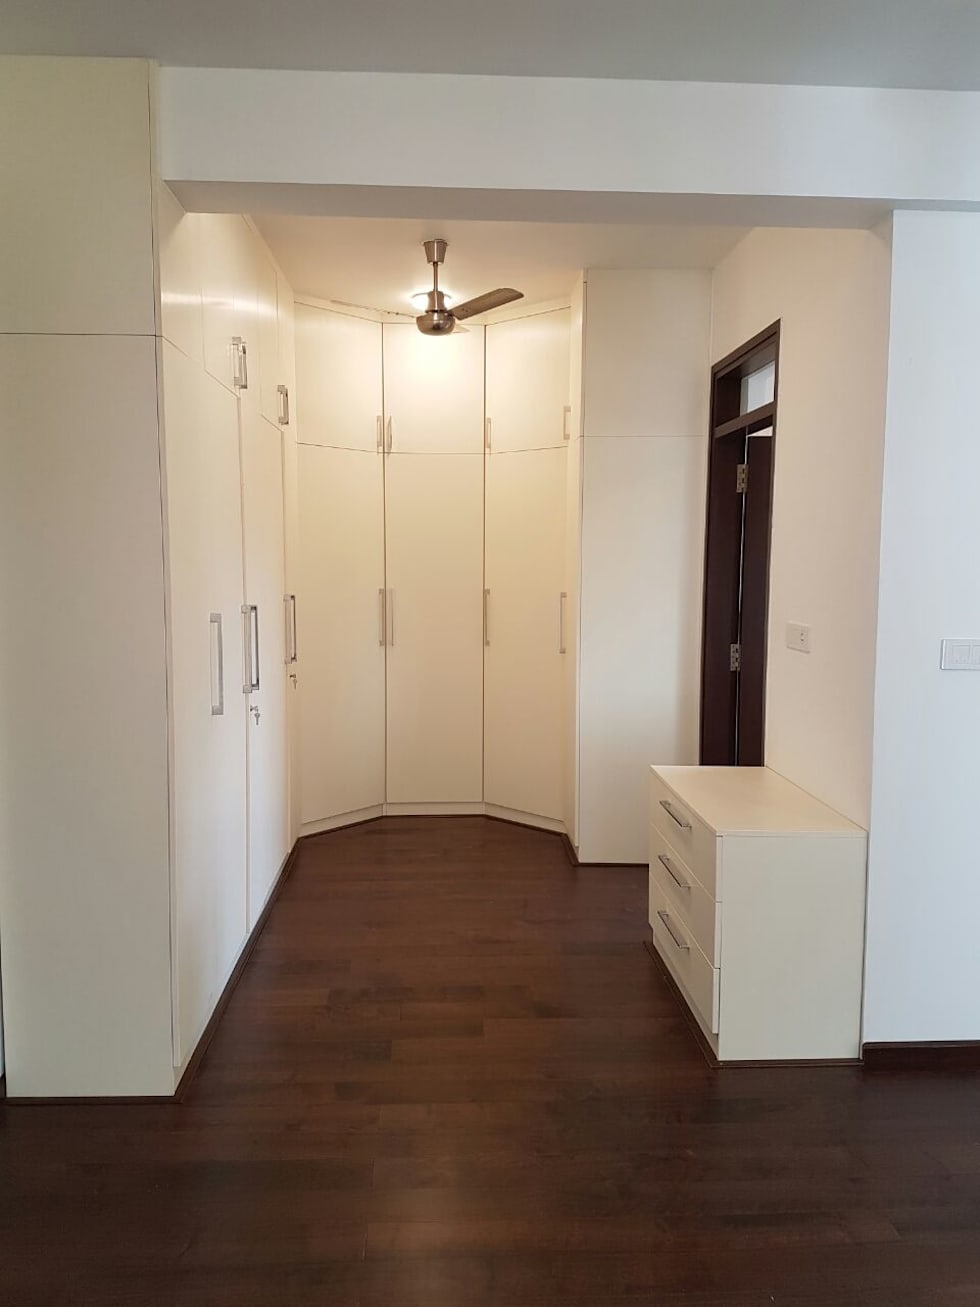 Hinged Door Wardrobe With Loft In High Gloss White Laminate On Mdf Installed By Zenia